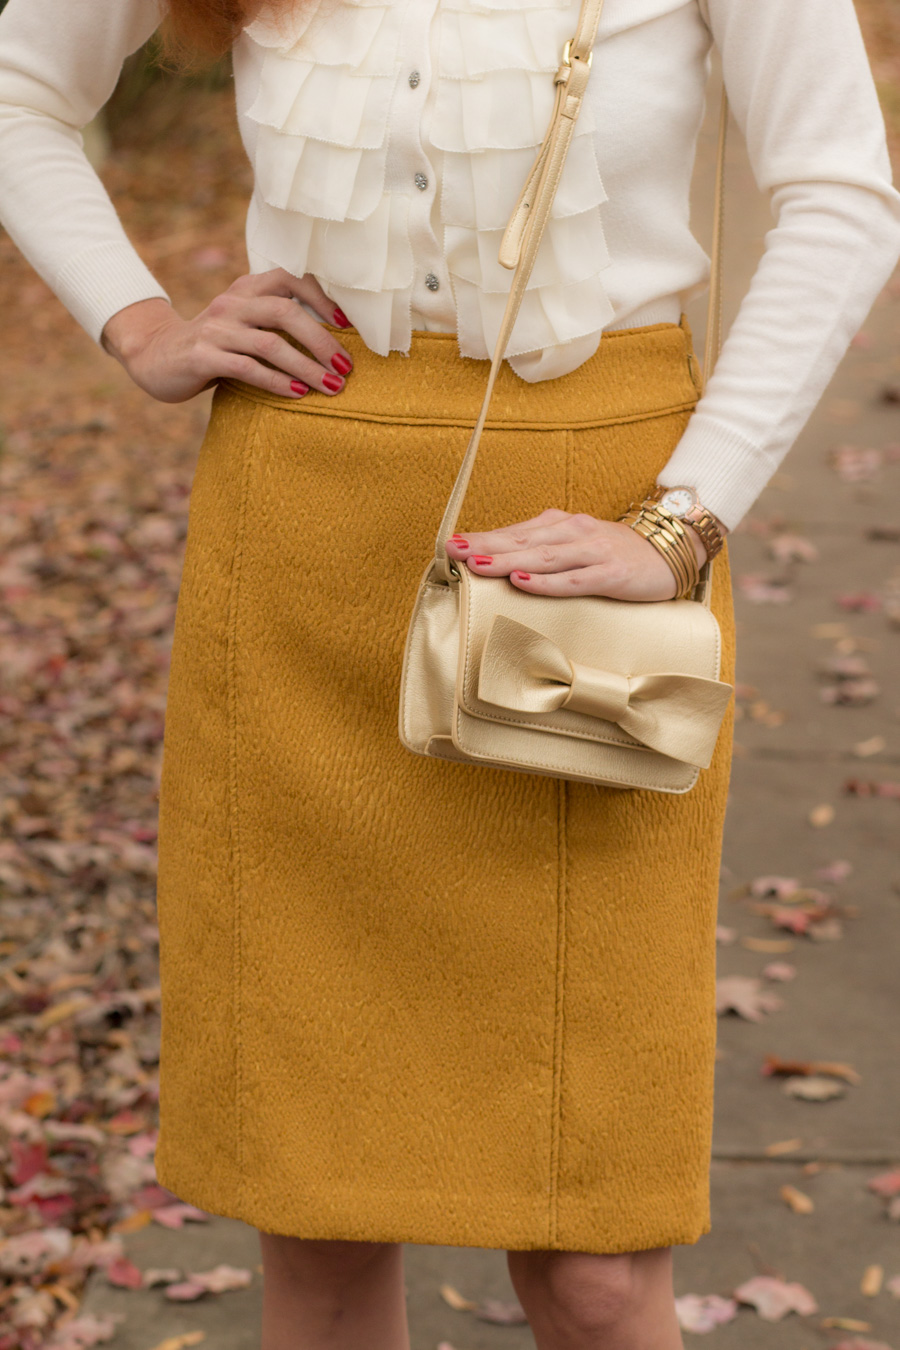 ad569b57d6 The outfit came together pretty easily, as i chose this textured gold pencil  skirt from my closet. I've been wanting to wear some winter white and this  ...